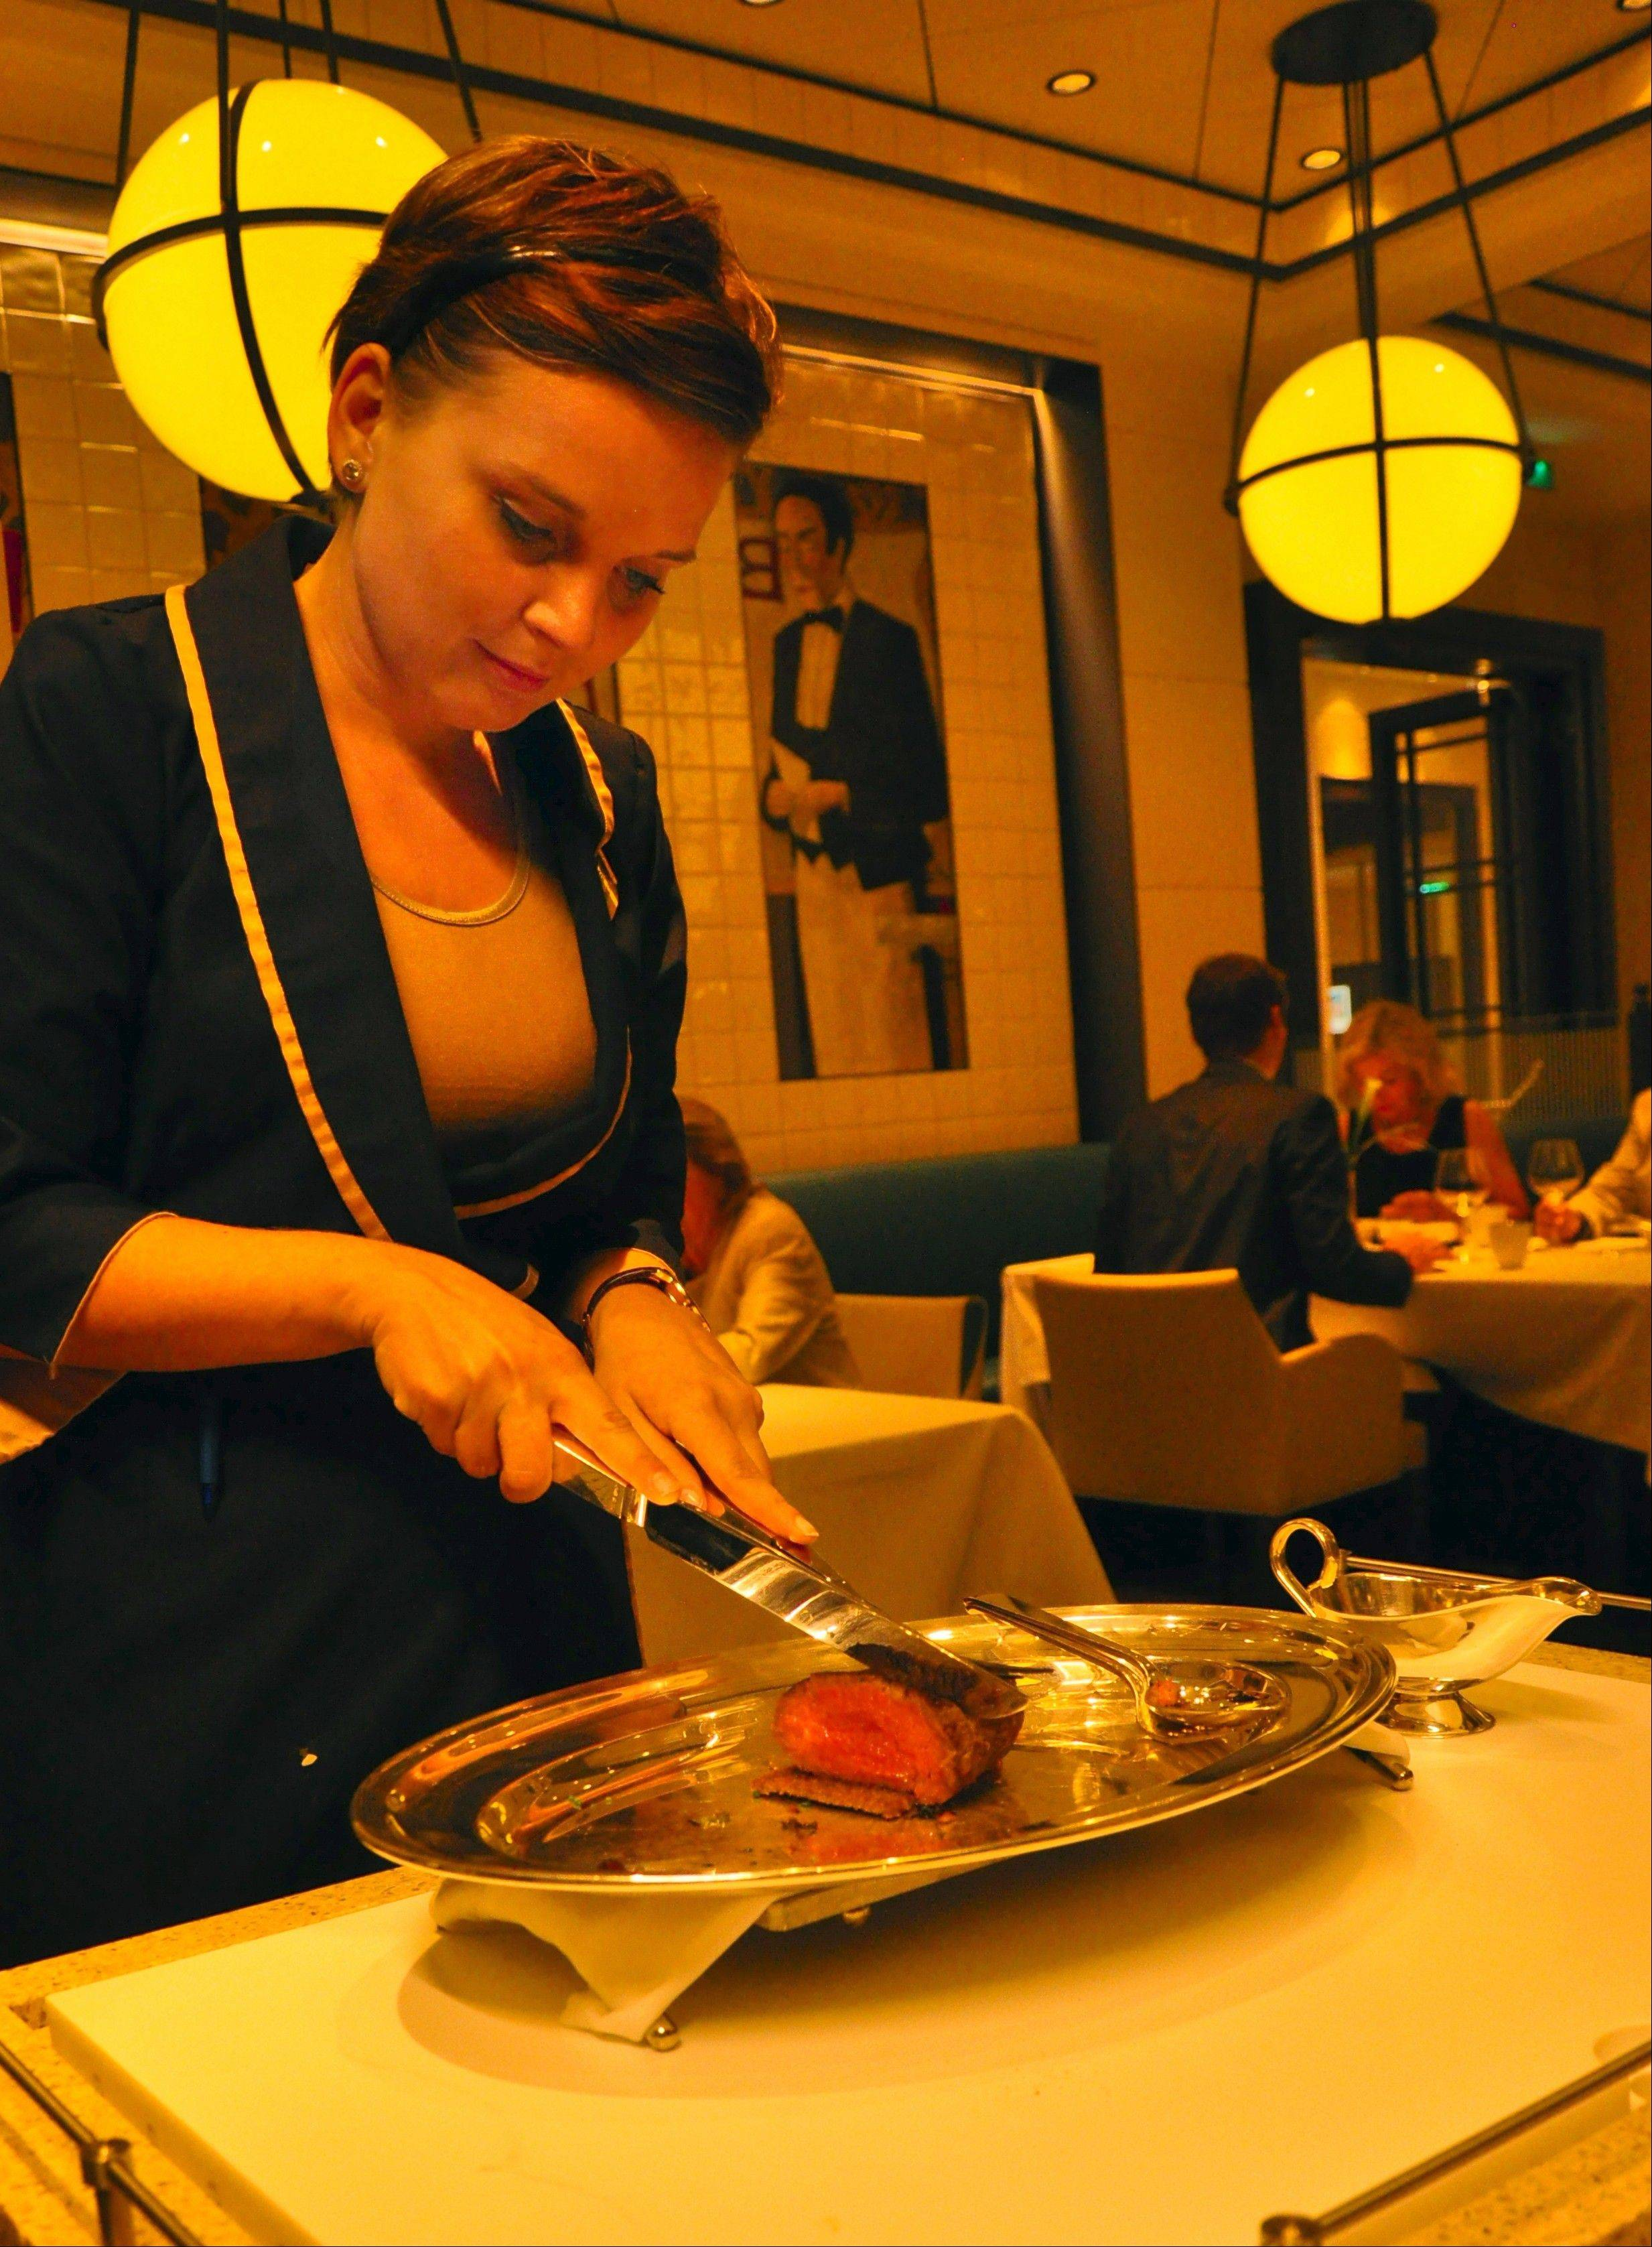 Chateaubriand is carved tableside in the Europa 2's French restaurant, Tarragon.